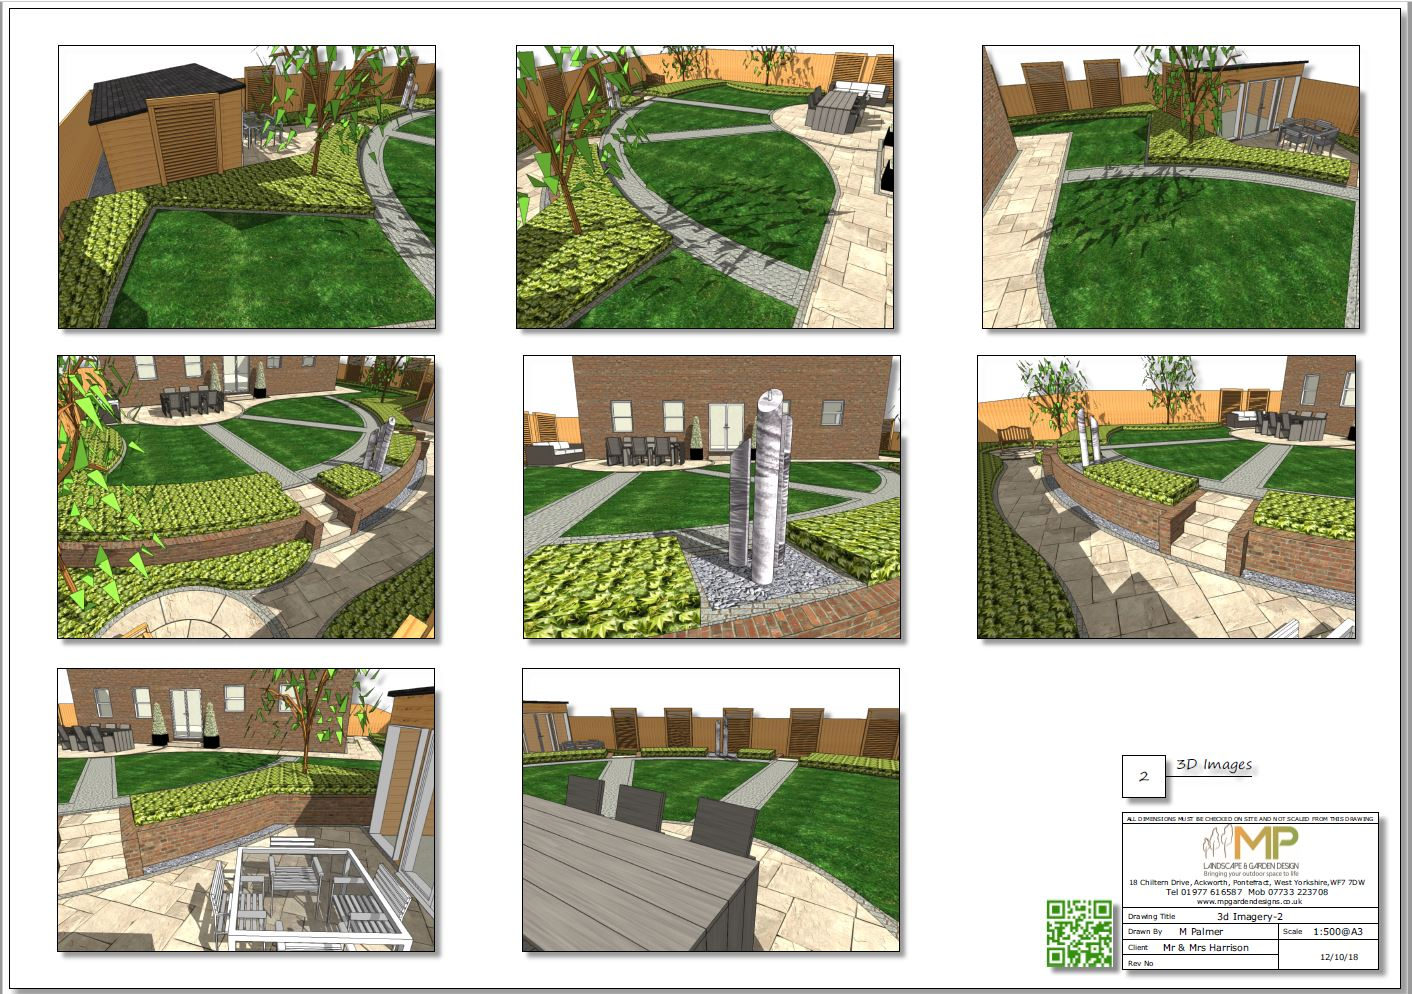 Colour 3D concept plan-2 for a rear garden in Wistow, North Yorshire.